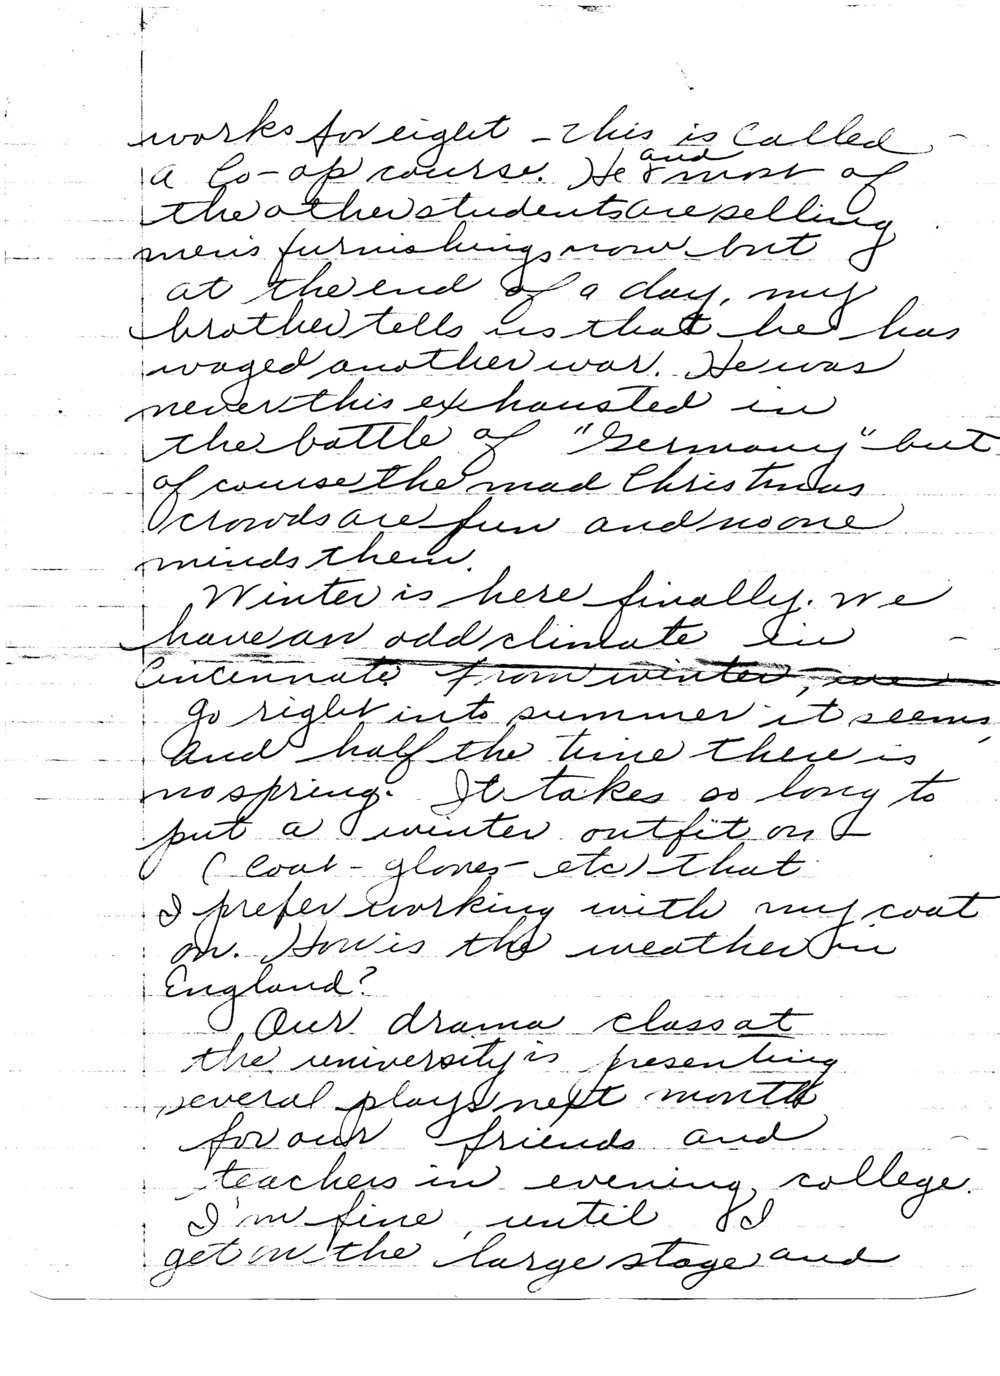 Ruth to Bob, Letter 5, December 20, 1945, page 2 of 6